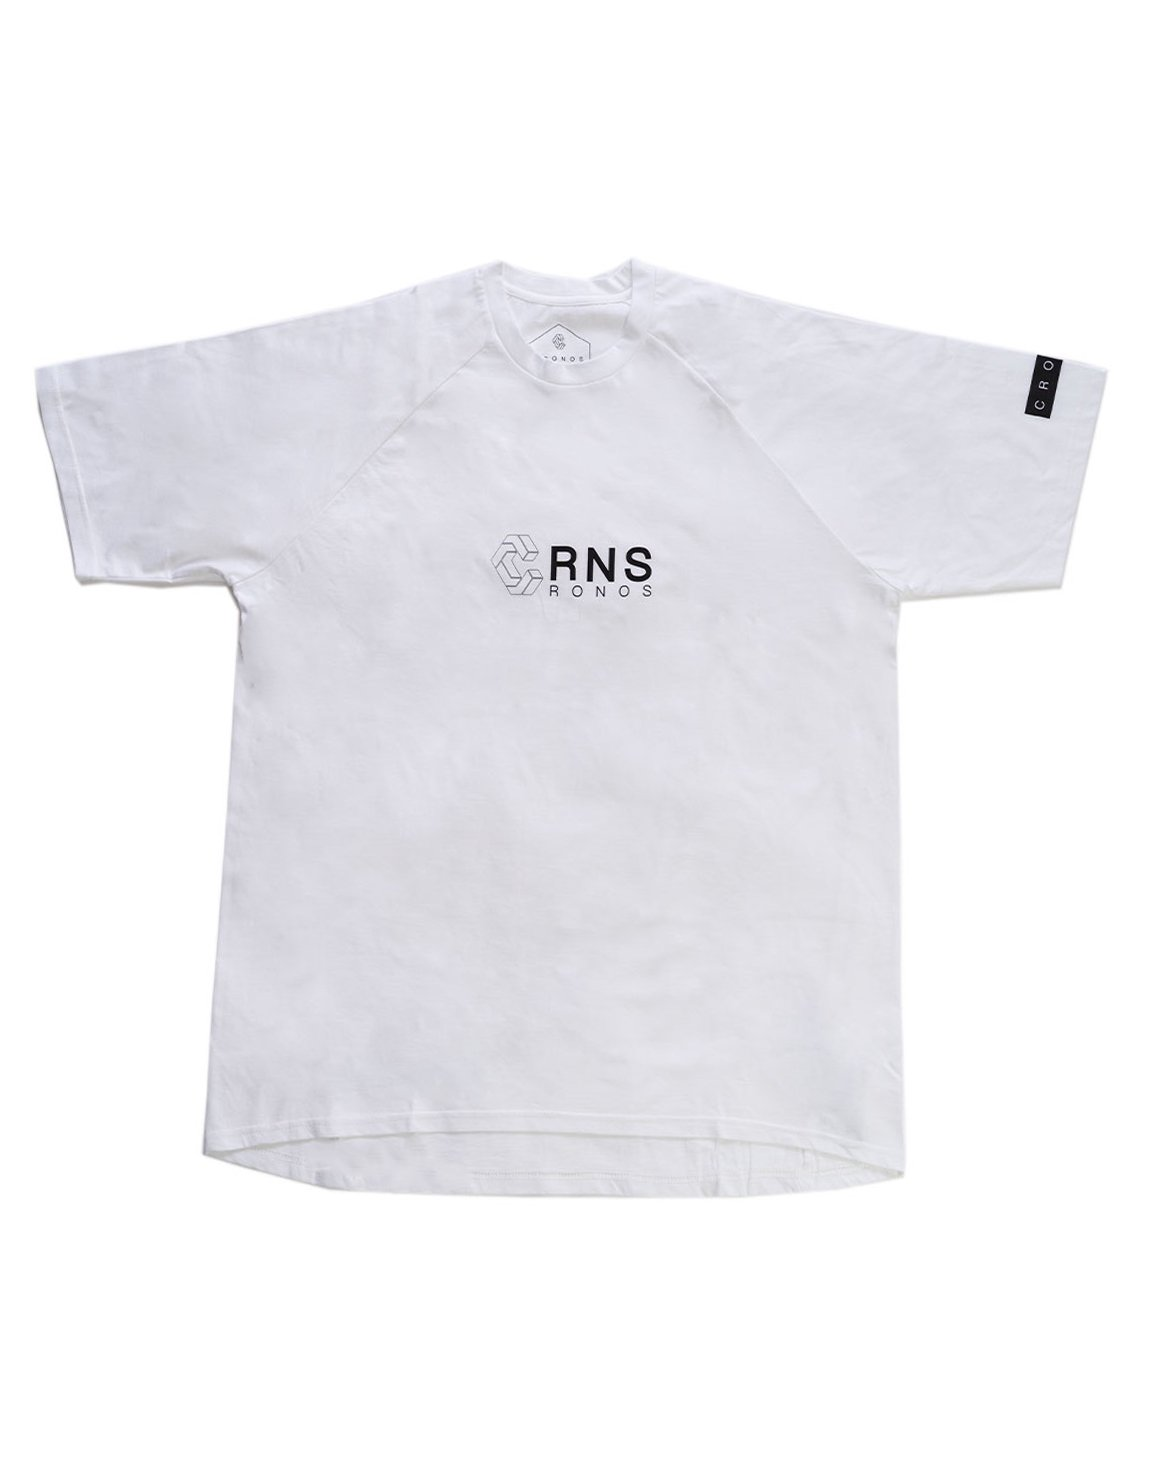 <img class='new_mark_img1' src='https://img.shop-pro.jp/img/new/icons1.gif' style='border:none;display:inline;margin:0px;padding:0px;width:auto;' />CRNS HEM ROUNDNESS T-SHIRTS 【WHITE】